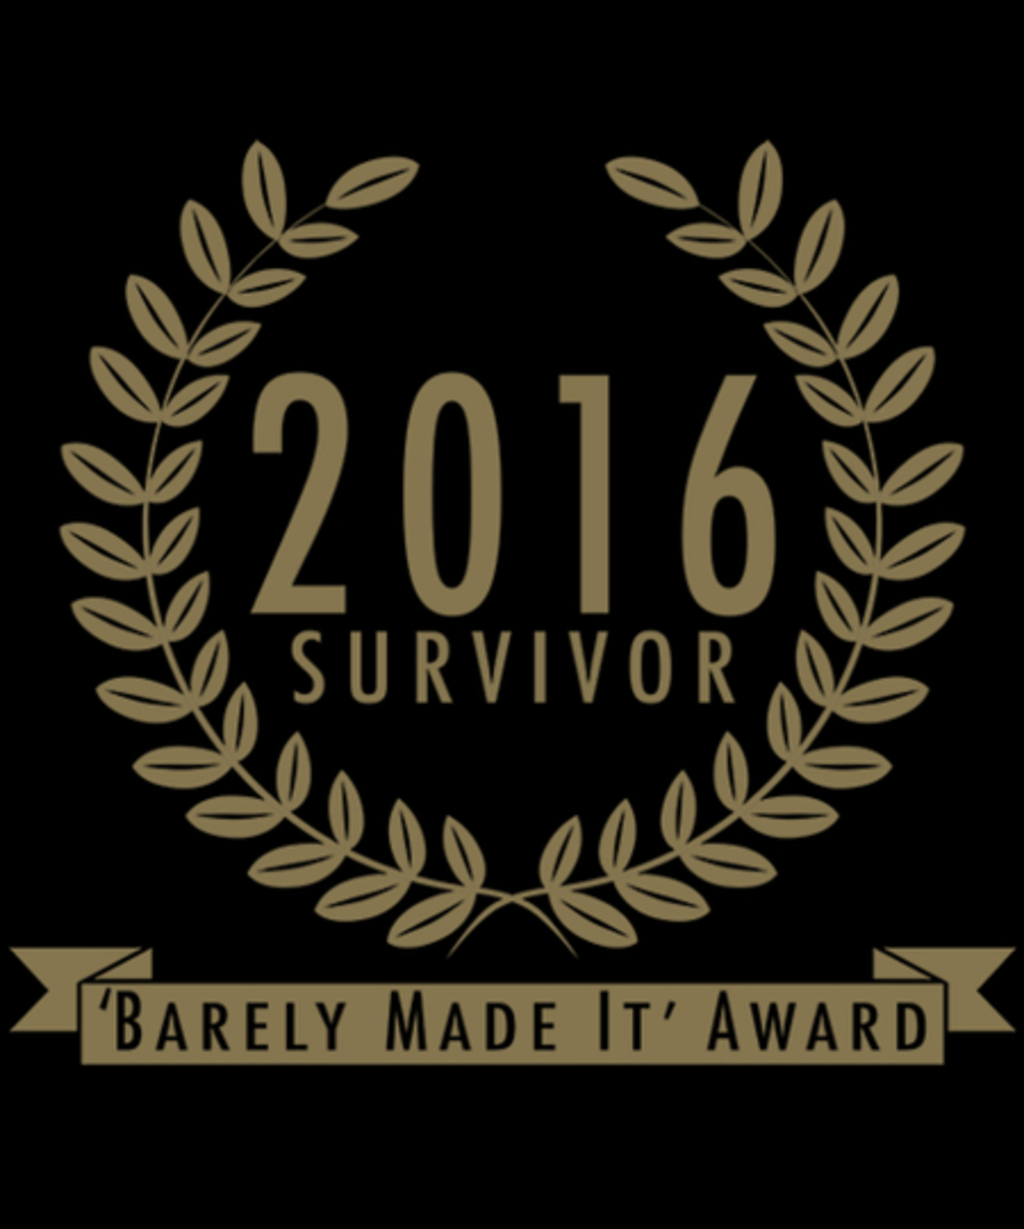 Qwertee: Year 2016 Survivor